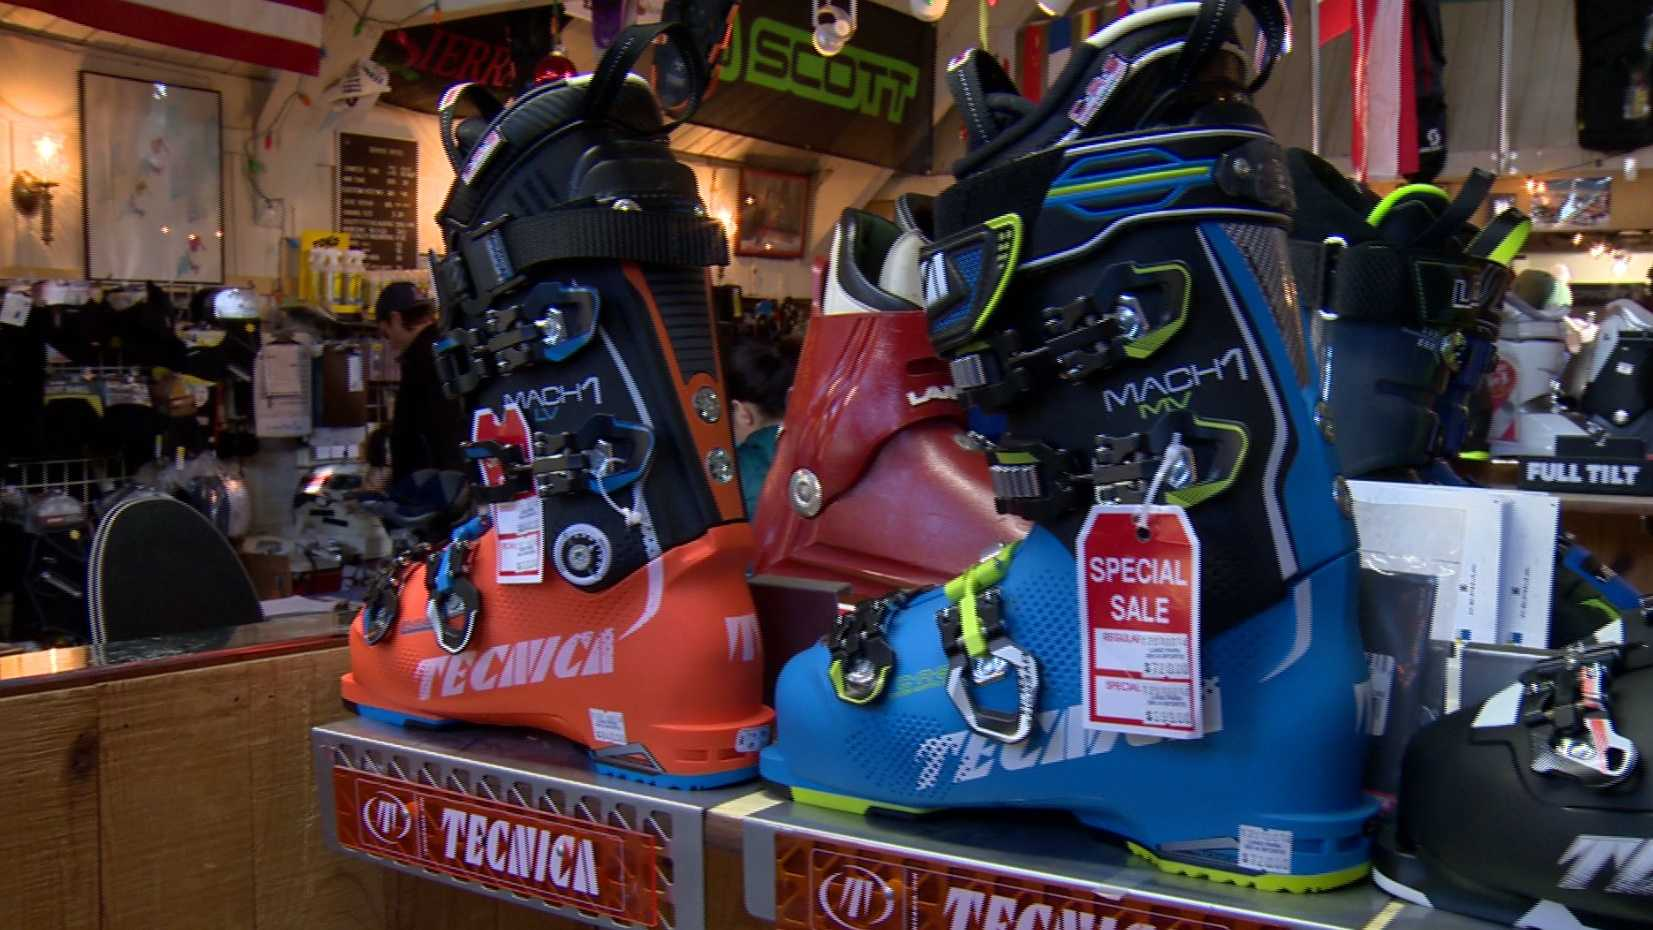 Stores stock up on skiing and snowboarding equipment as the winter sports season kicks off in the Sierra thanks to recent snow storms.